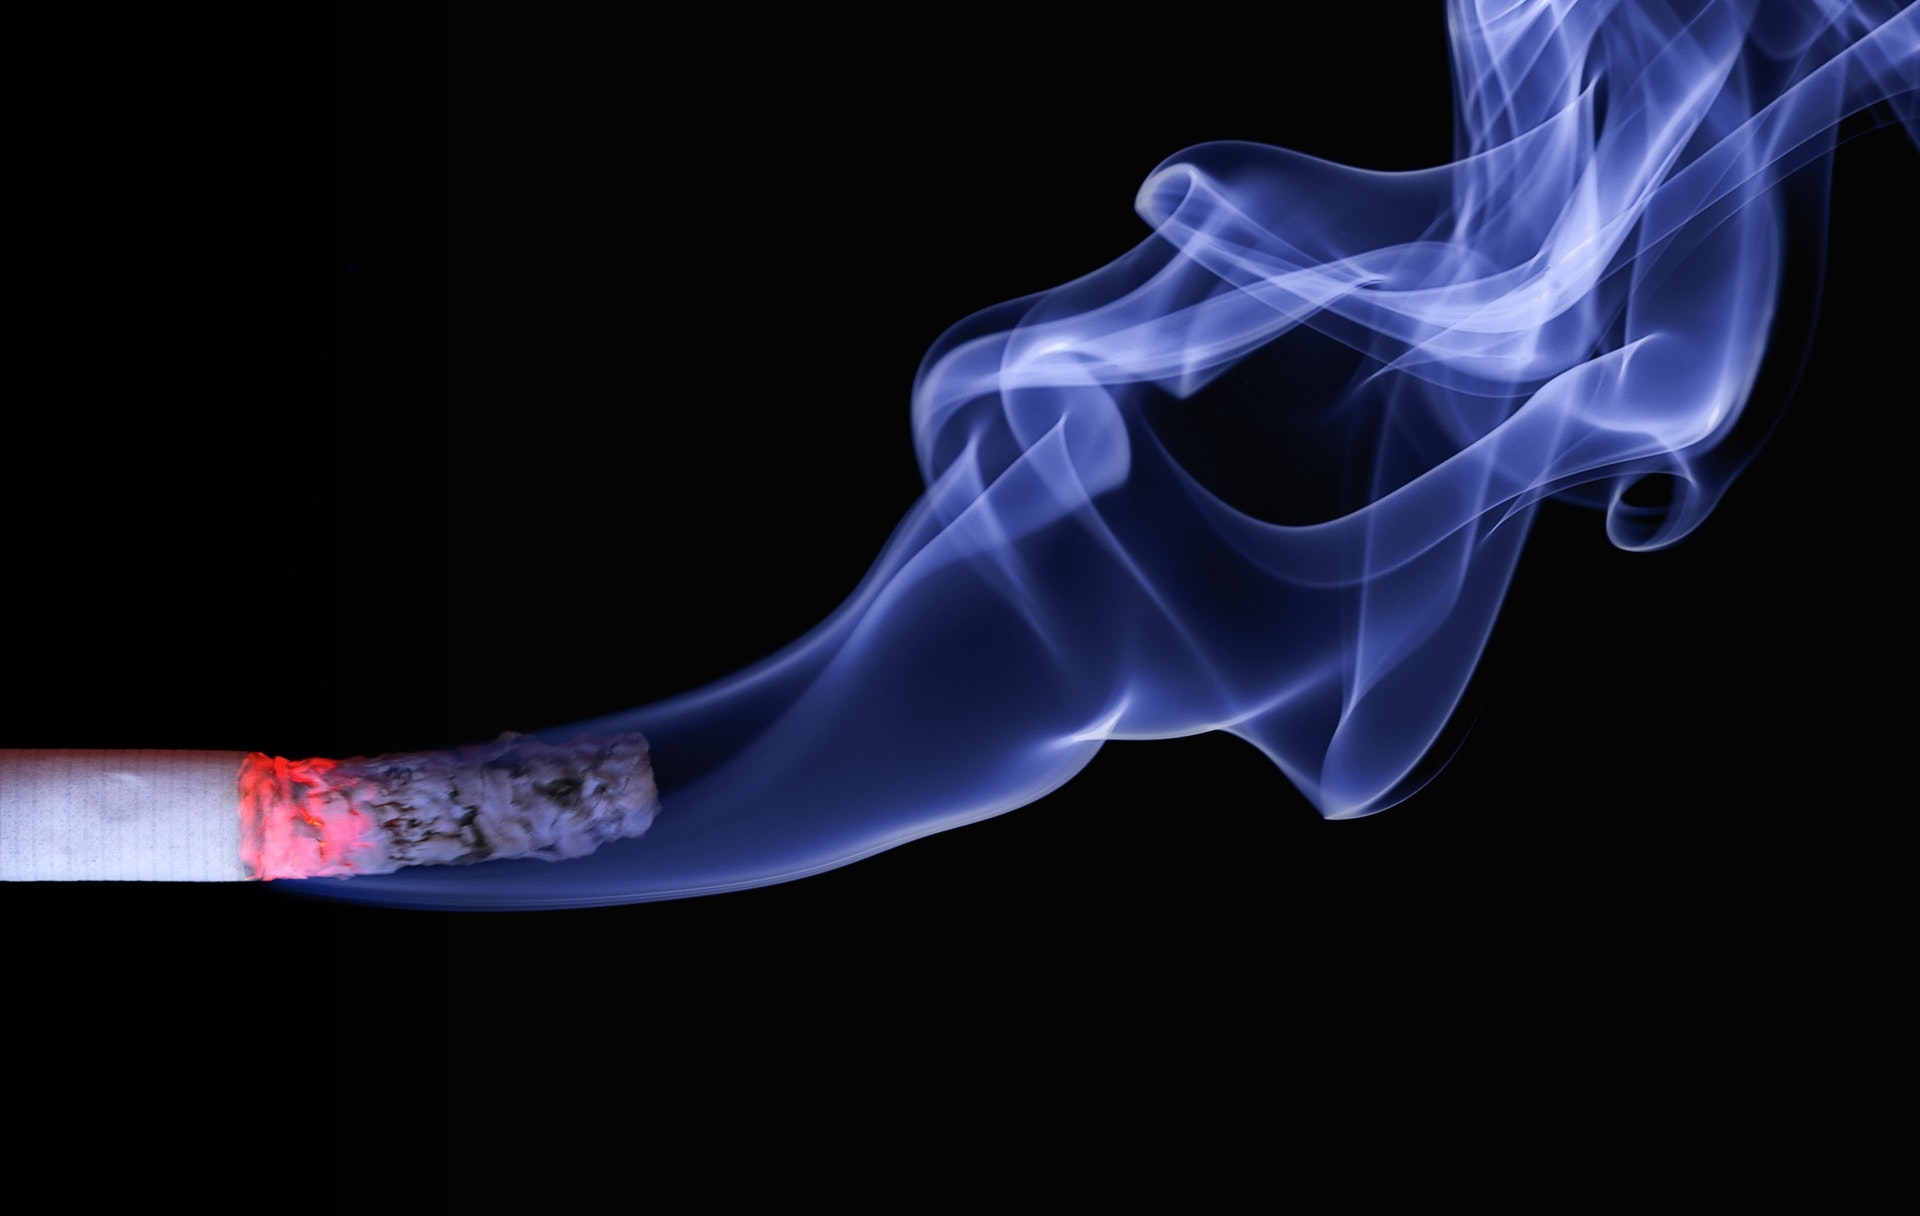 this is a picture of a smoking cigarette